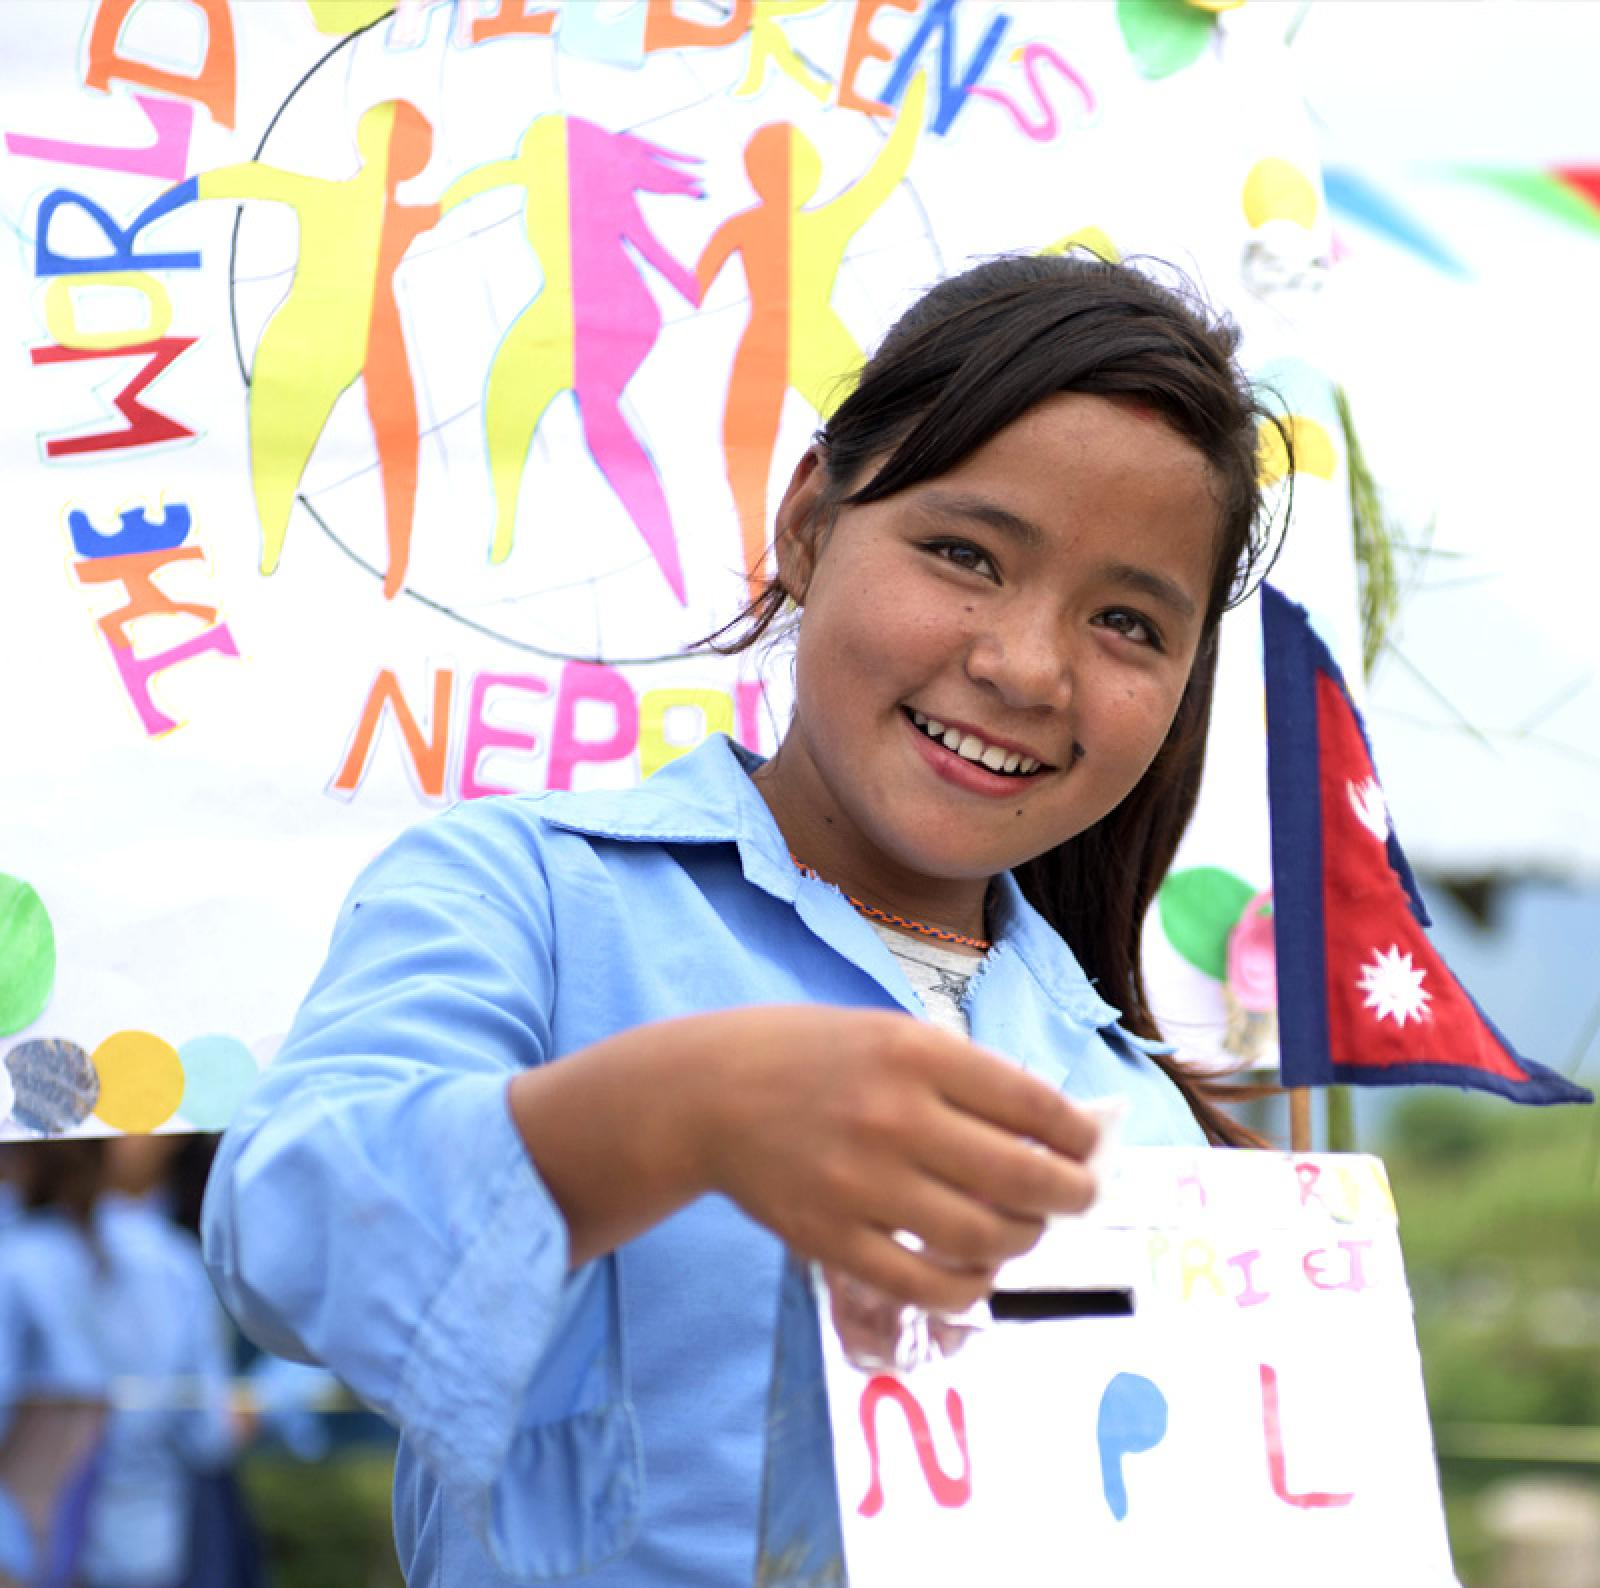 Nepali girls painting a sign